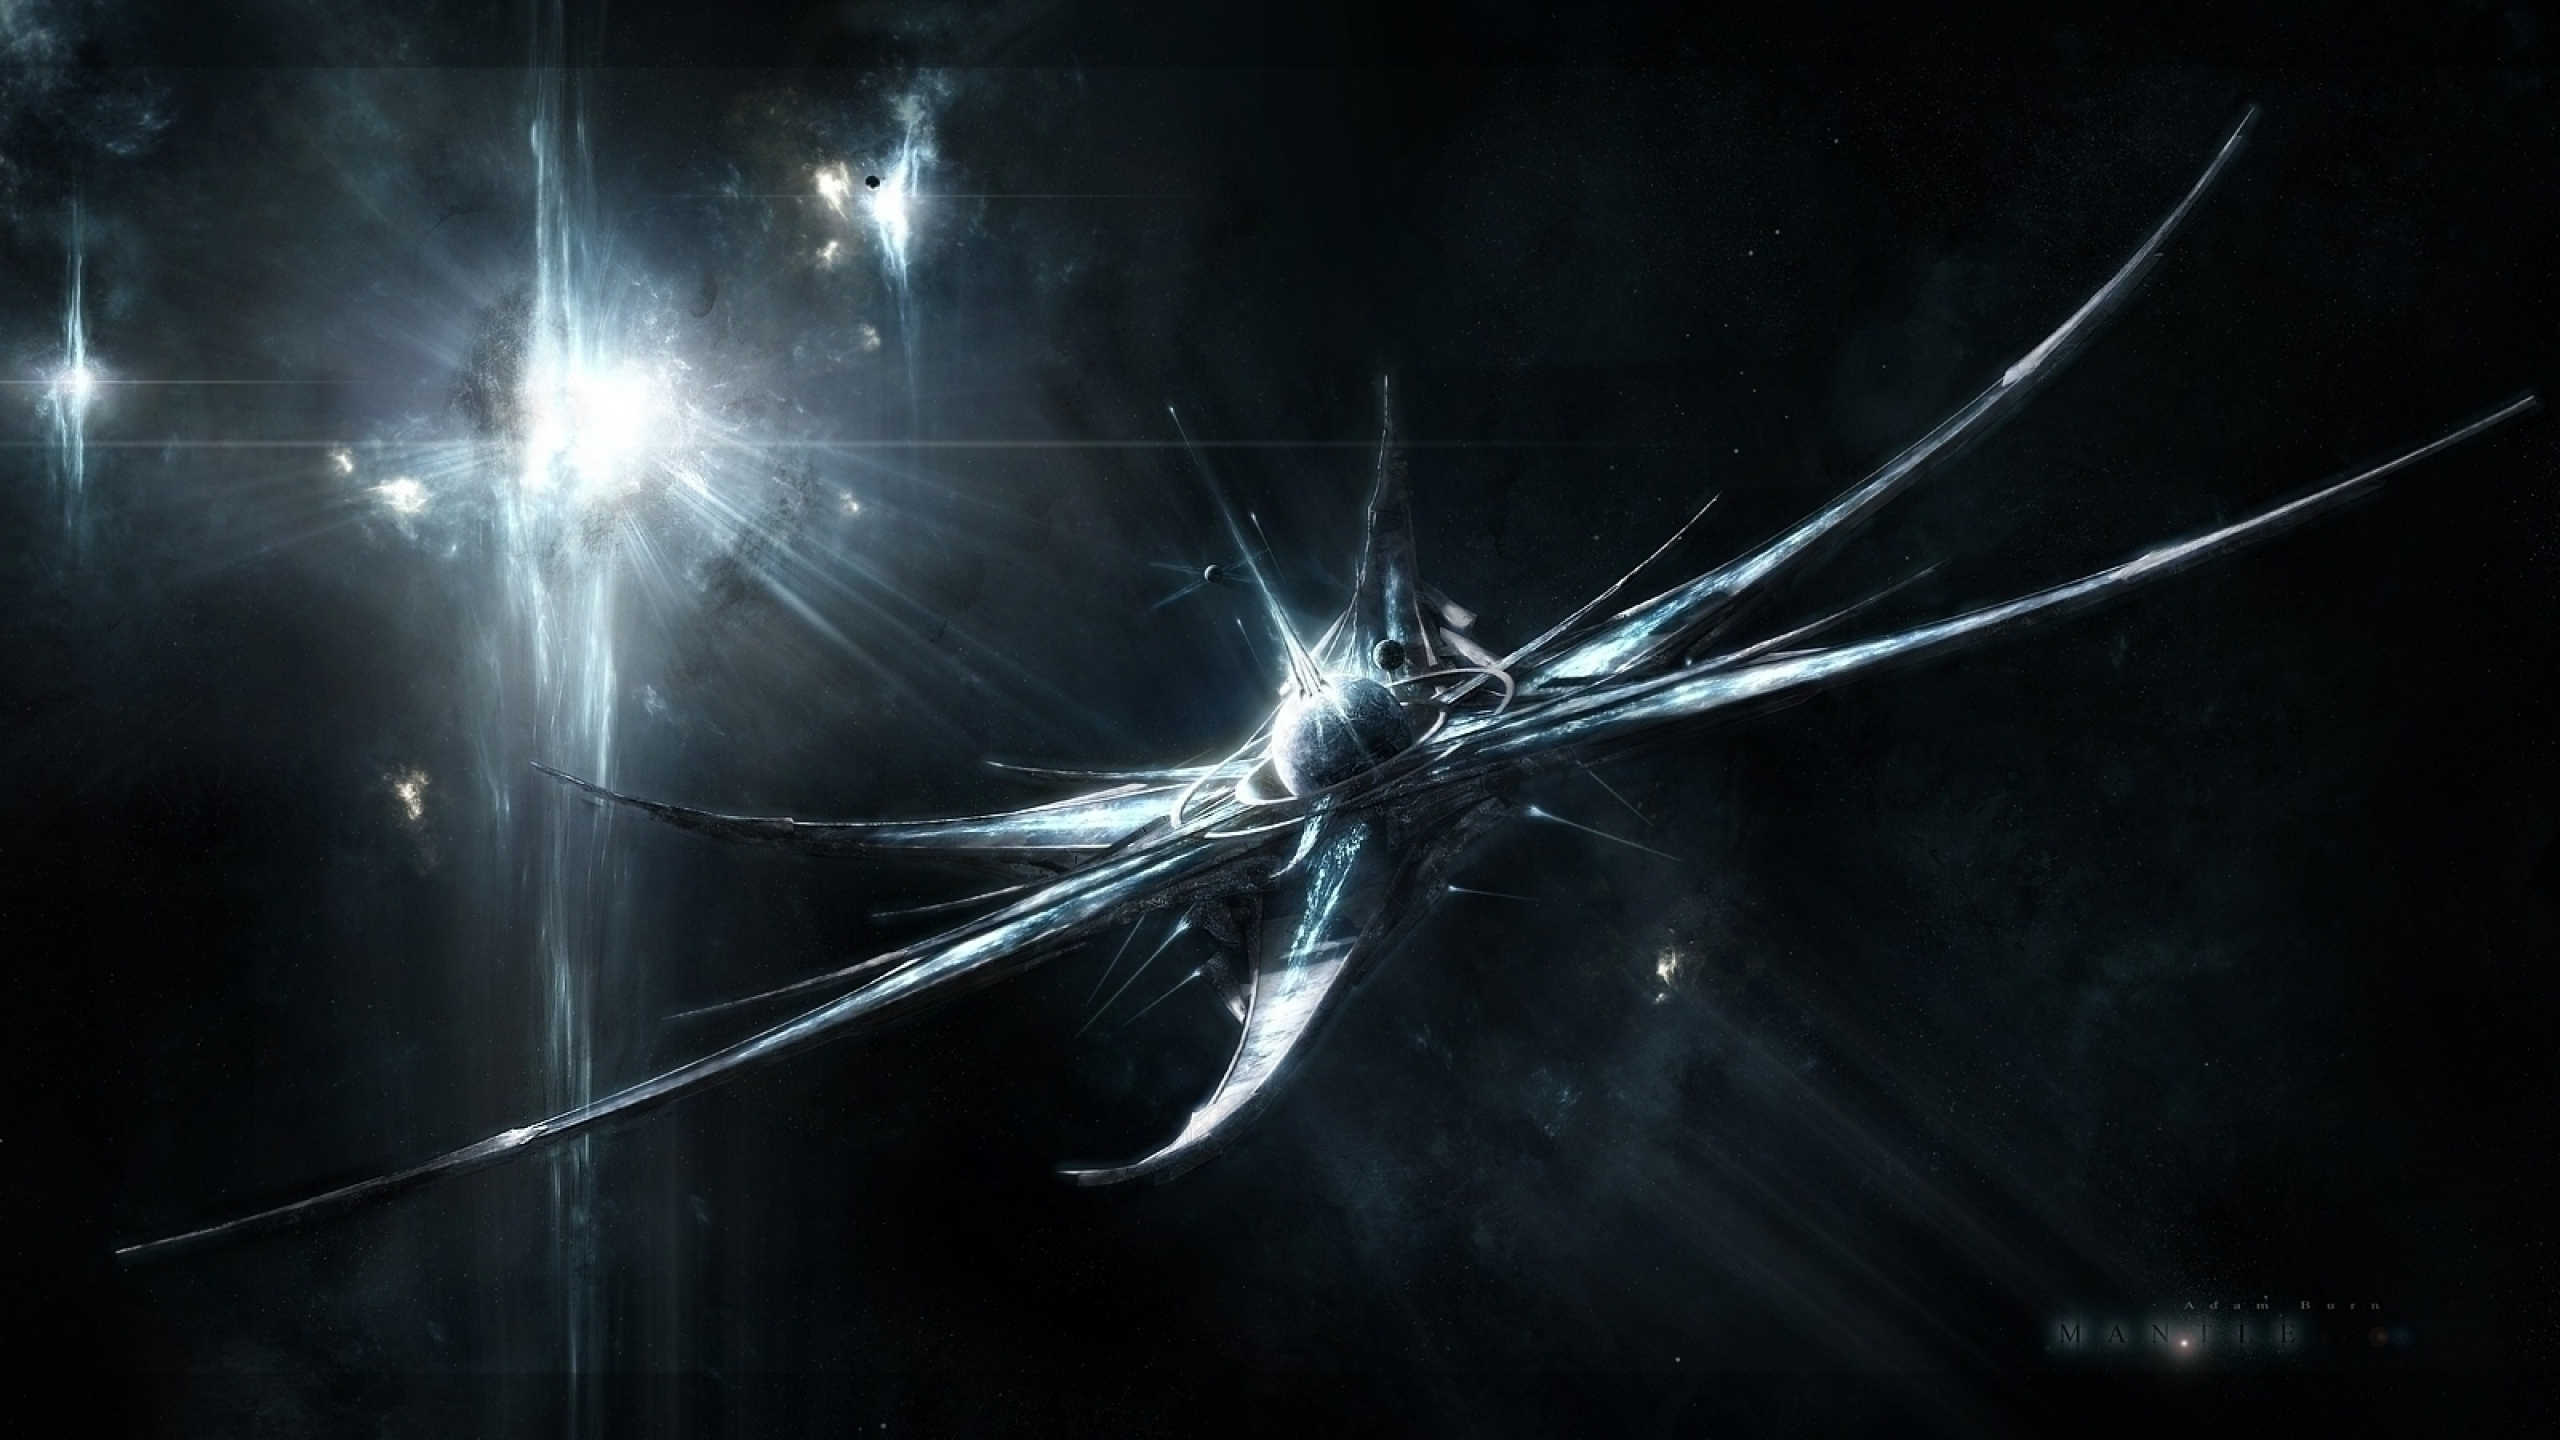 Quelle: http://free-wallpapers-download.net/pictures/3/images/grey-outer-space-science-fiction-wallpaper.jpg